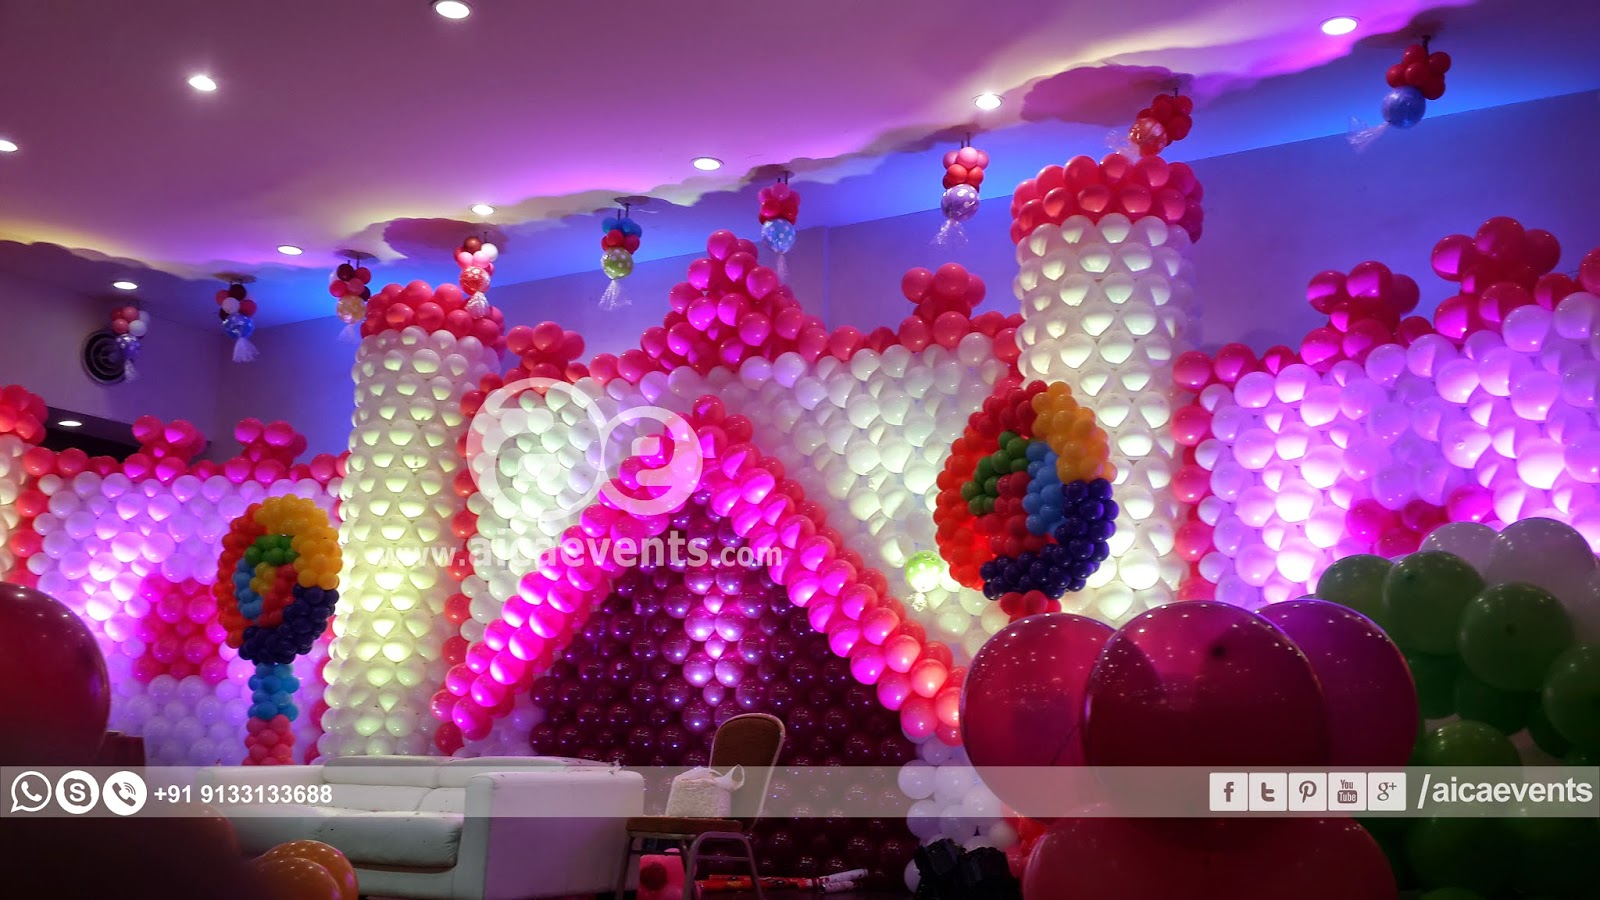 Aicaevents india castle with balloon wall decoration for Balloon decoration for birthday party images